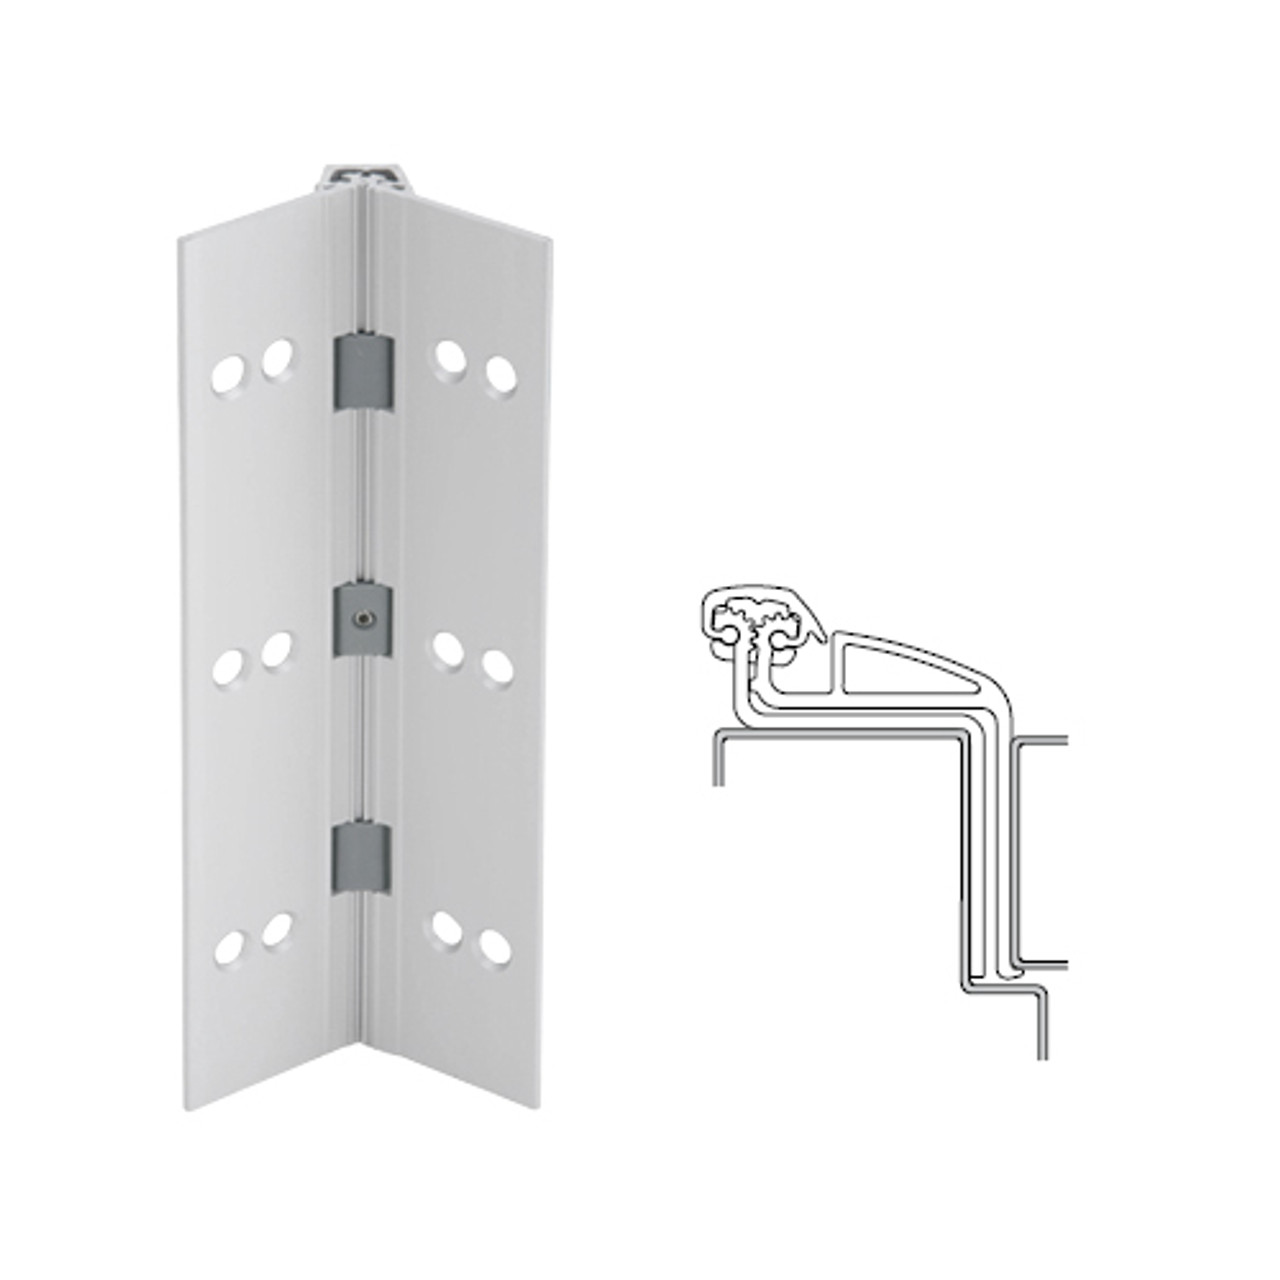 041XY-US28-85-TEKWD IVES Full Mortise Continuous Geared Hinges with Wood Screws in Satin Aluminum